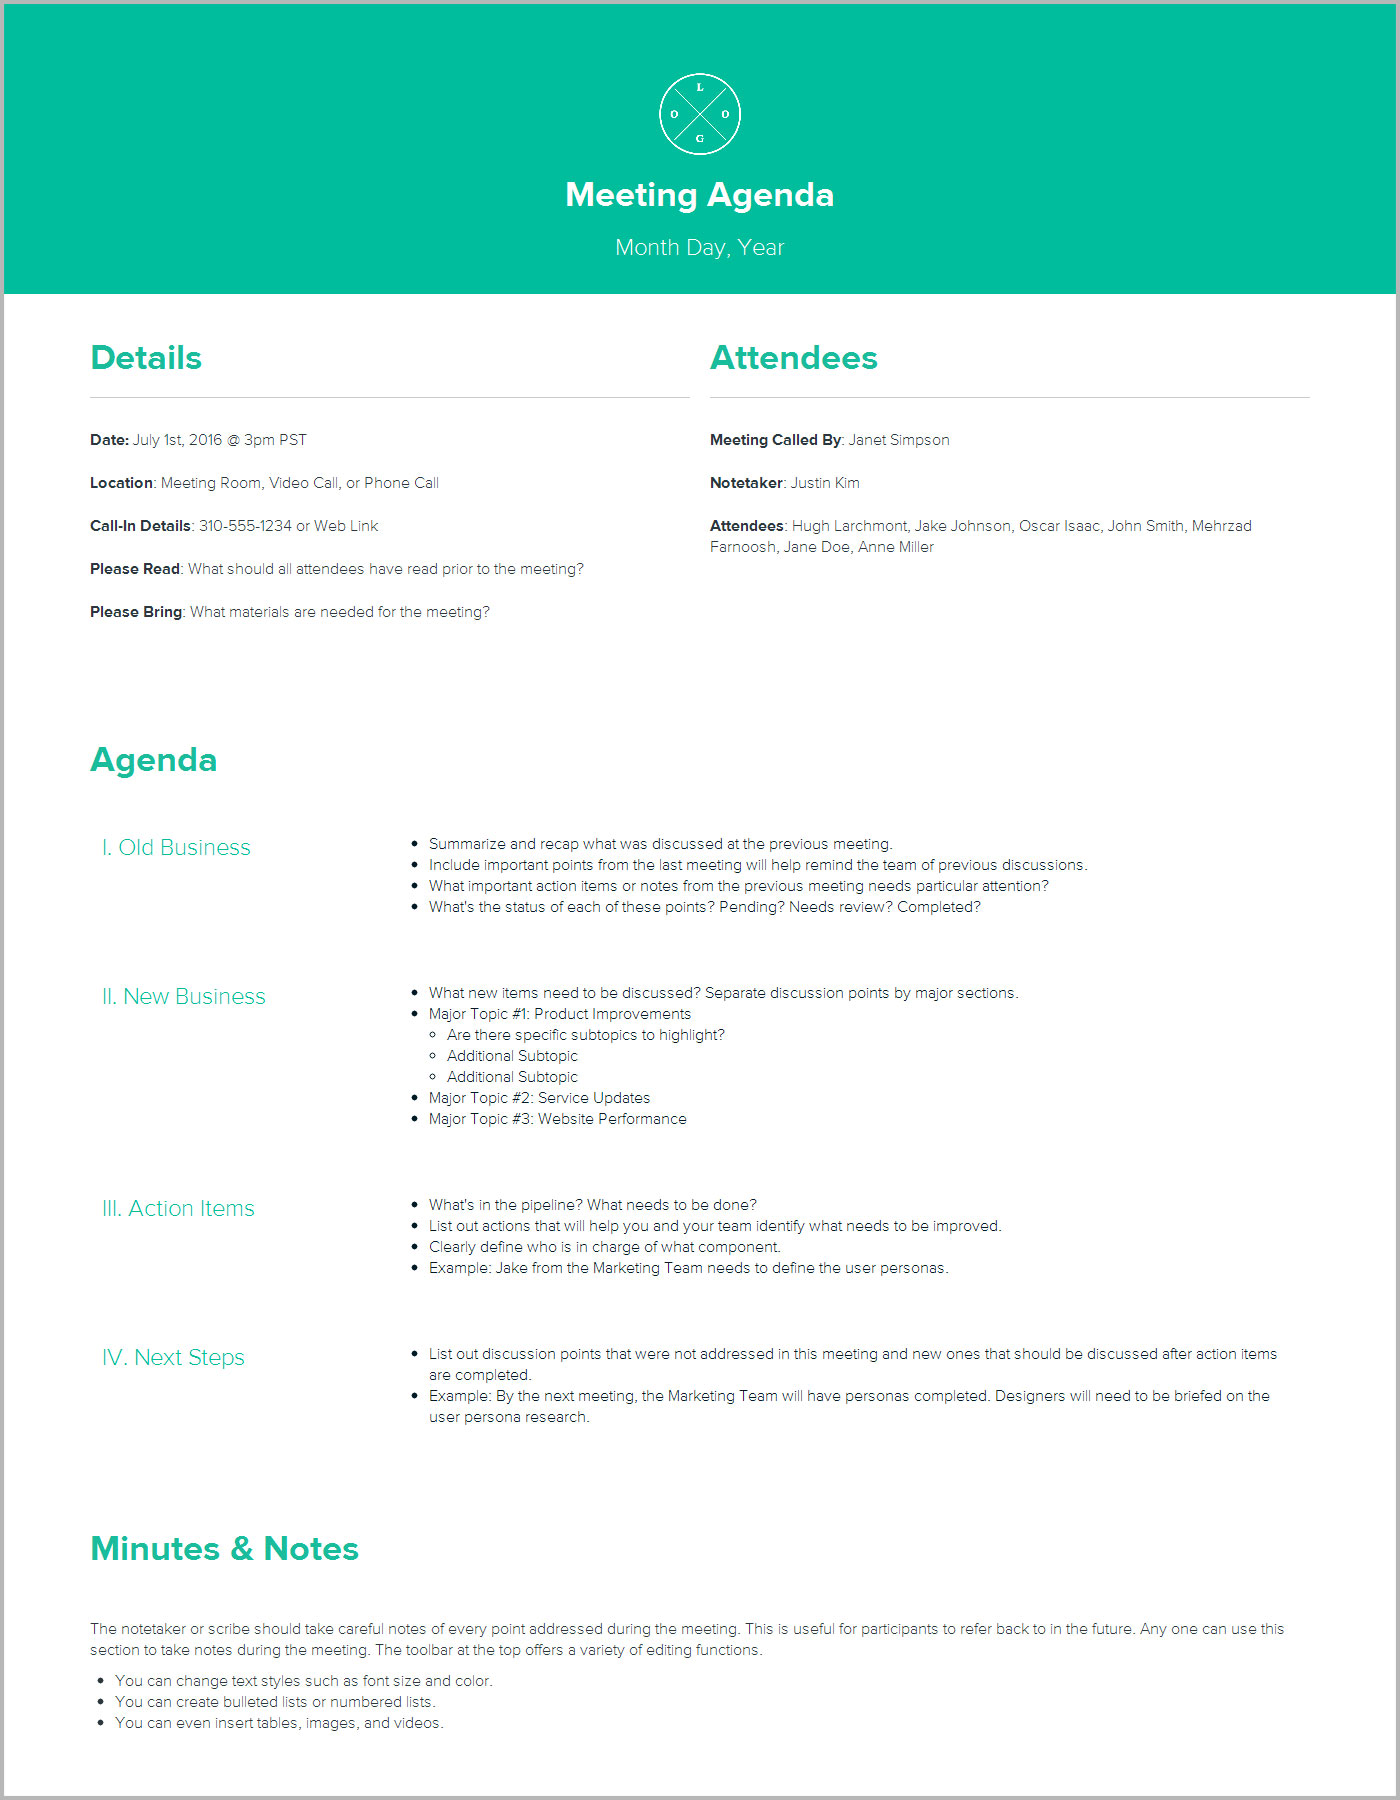 How to create a meeting agenda xtensio meeting agenda template by xtensio thecheapjerseys